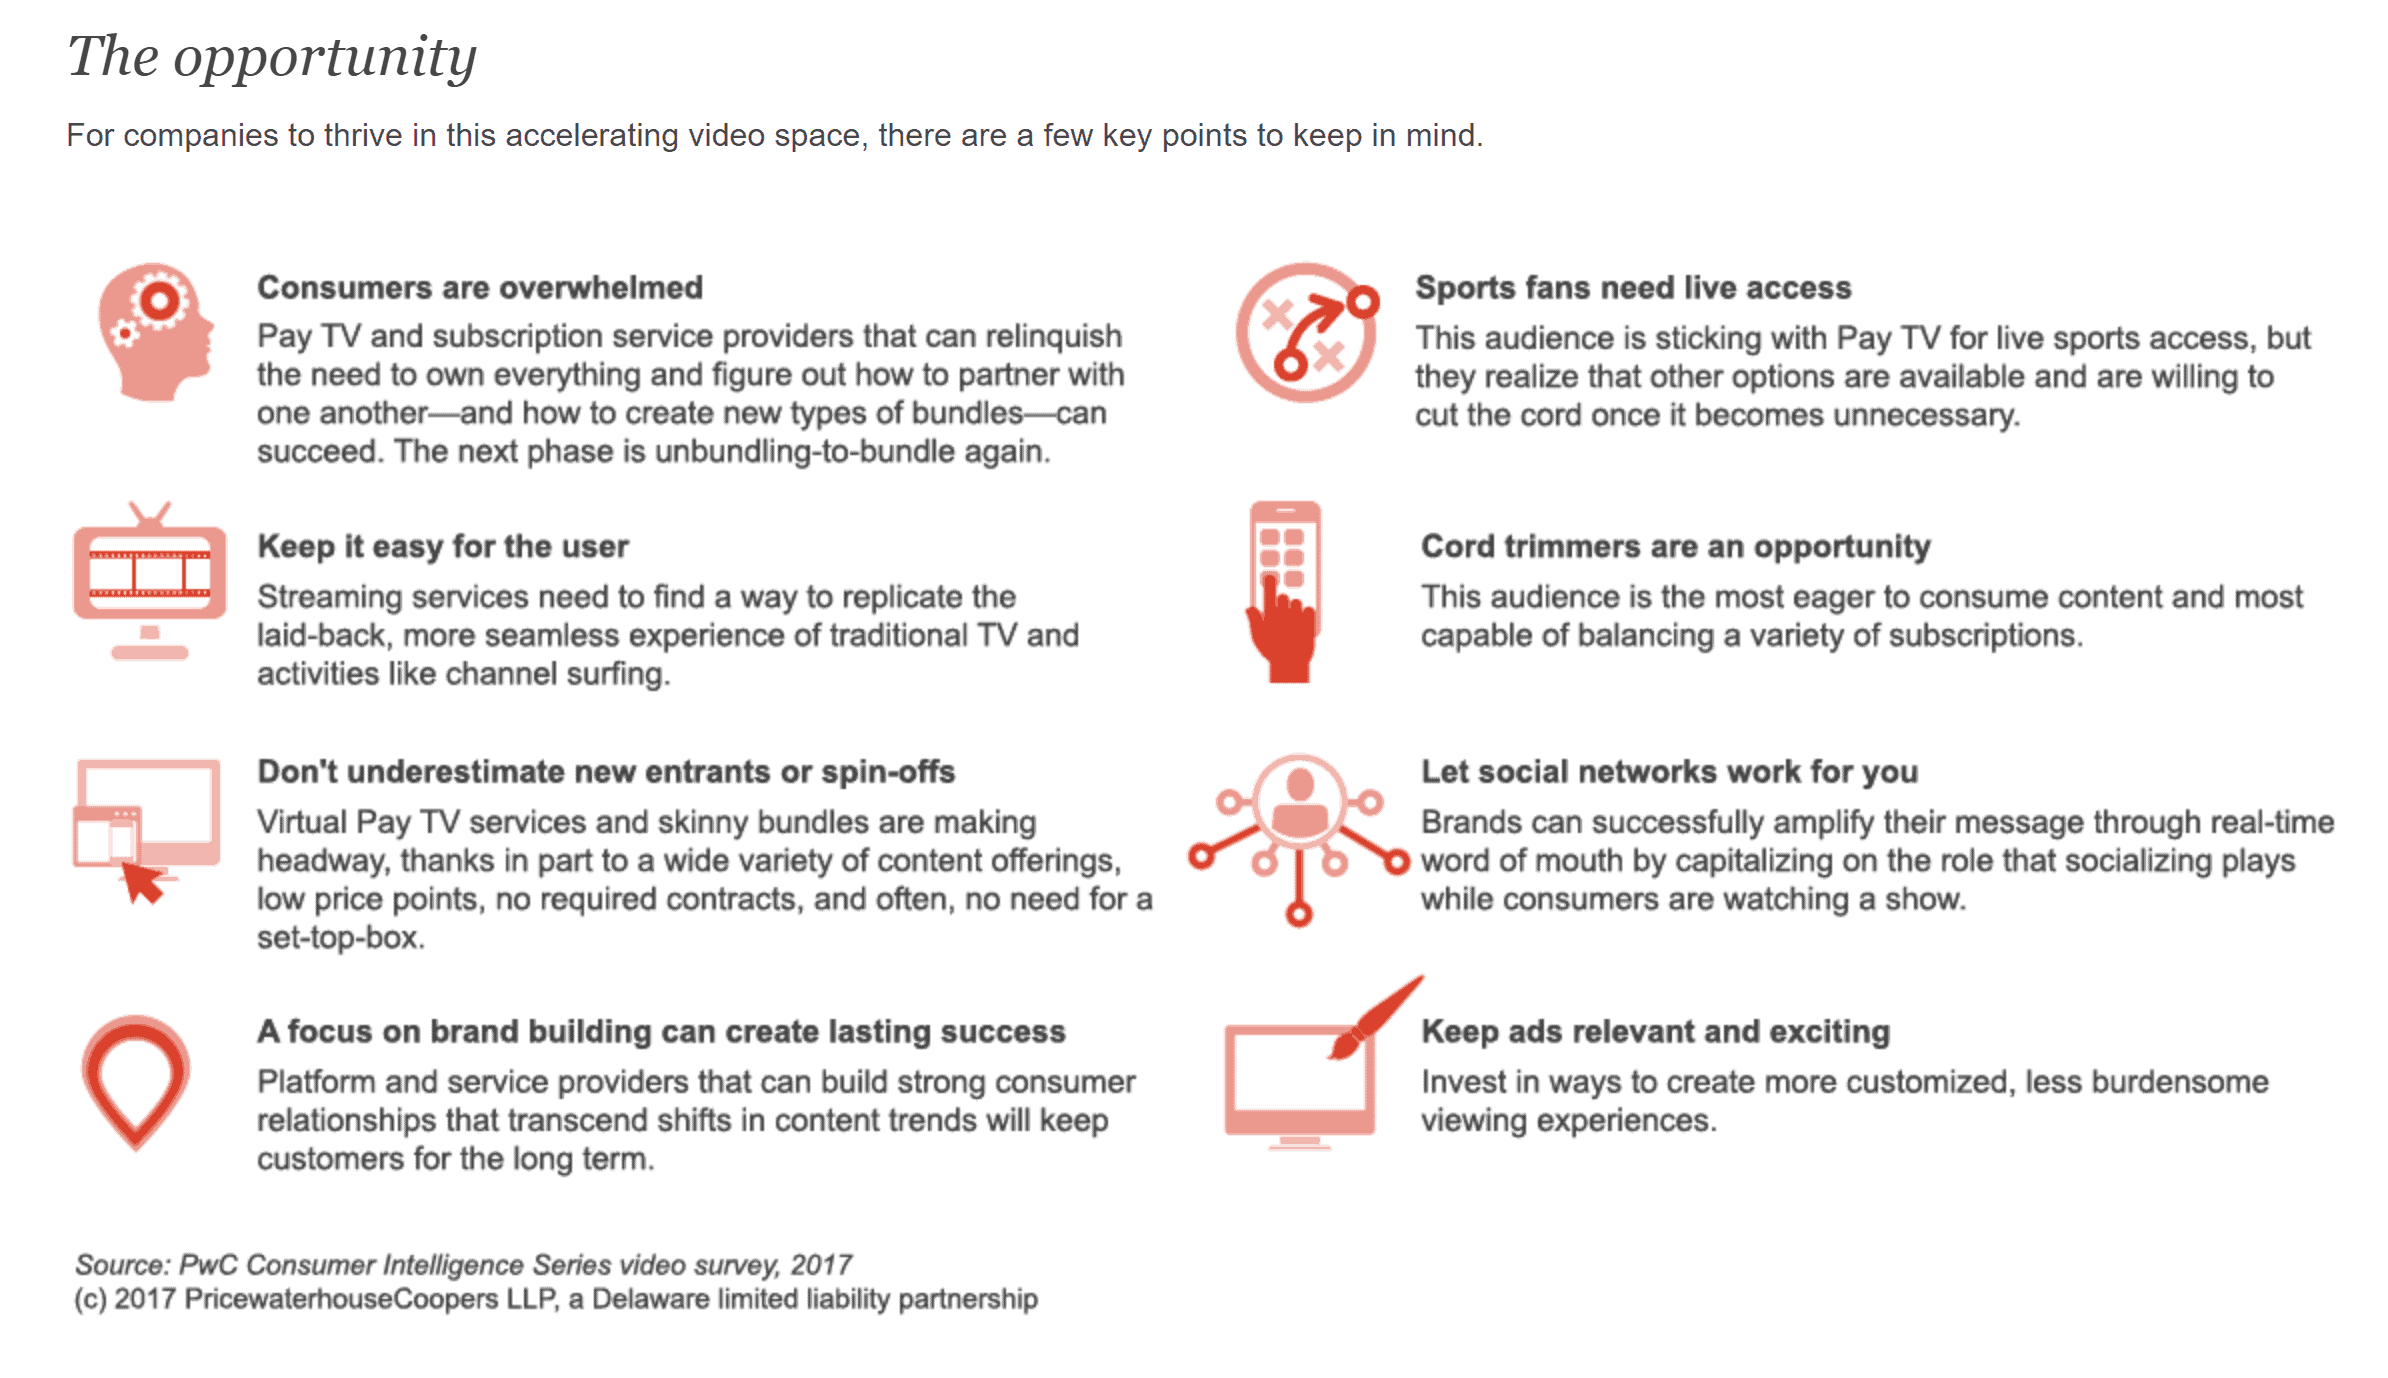 For companies to thrive in this accelerating video space, there are a few key points to keep in mind.